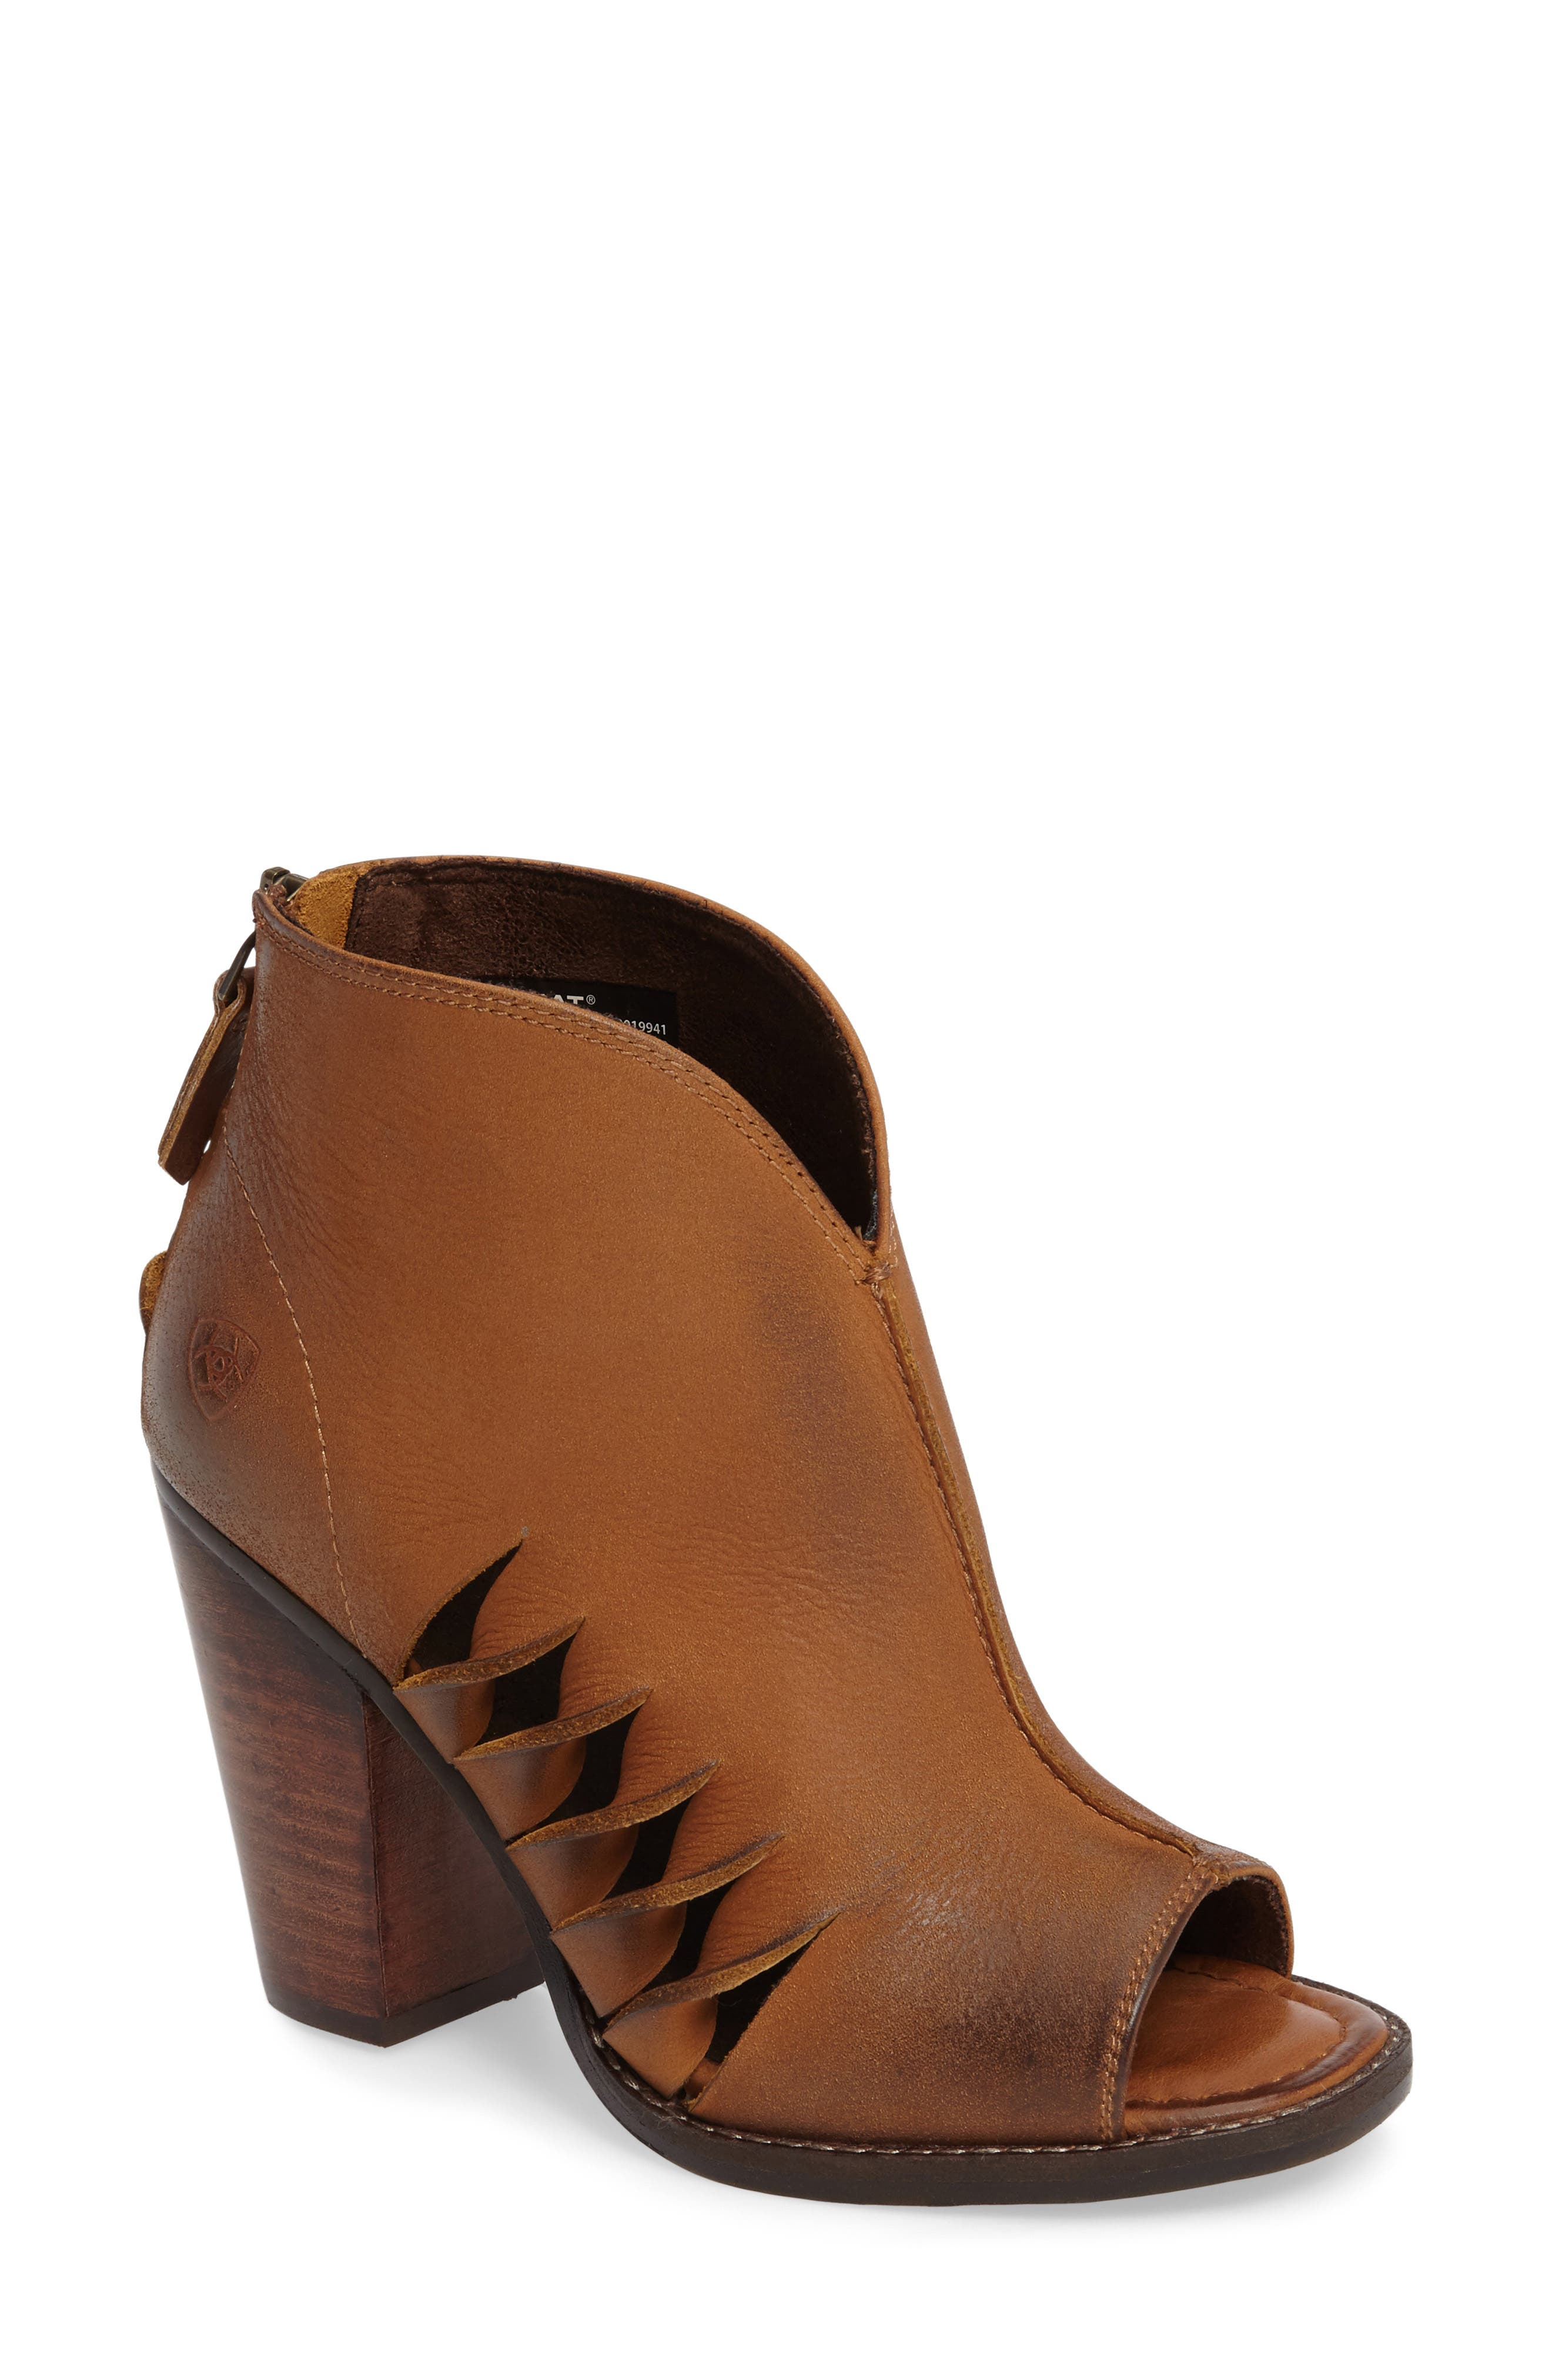 Lindsley Peep Toe Bootie,                         Main,                         color, Tennessee Tan Leather